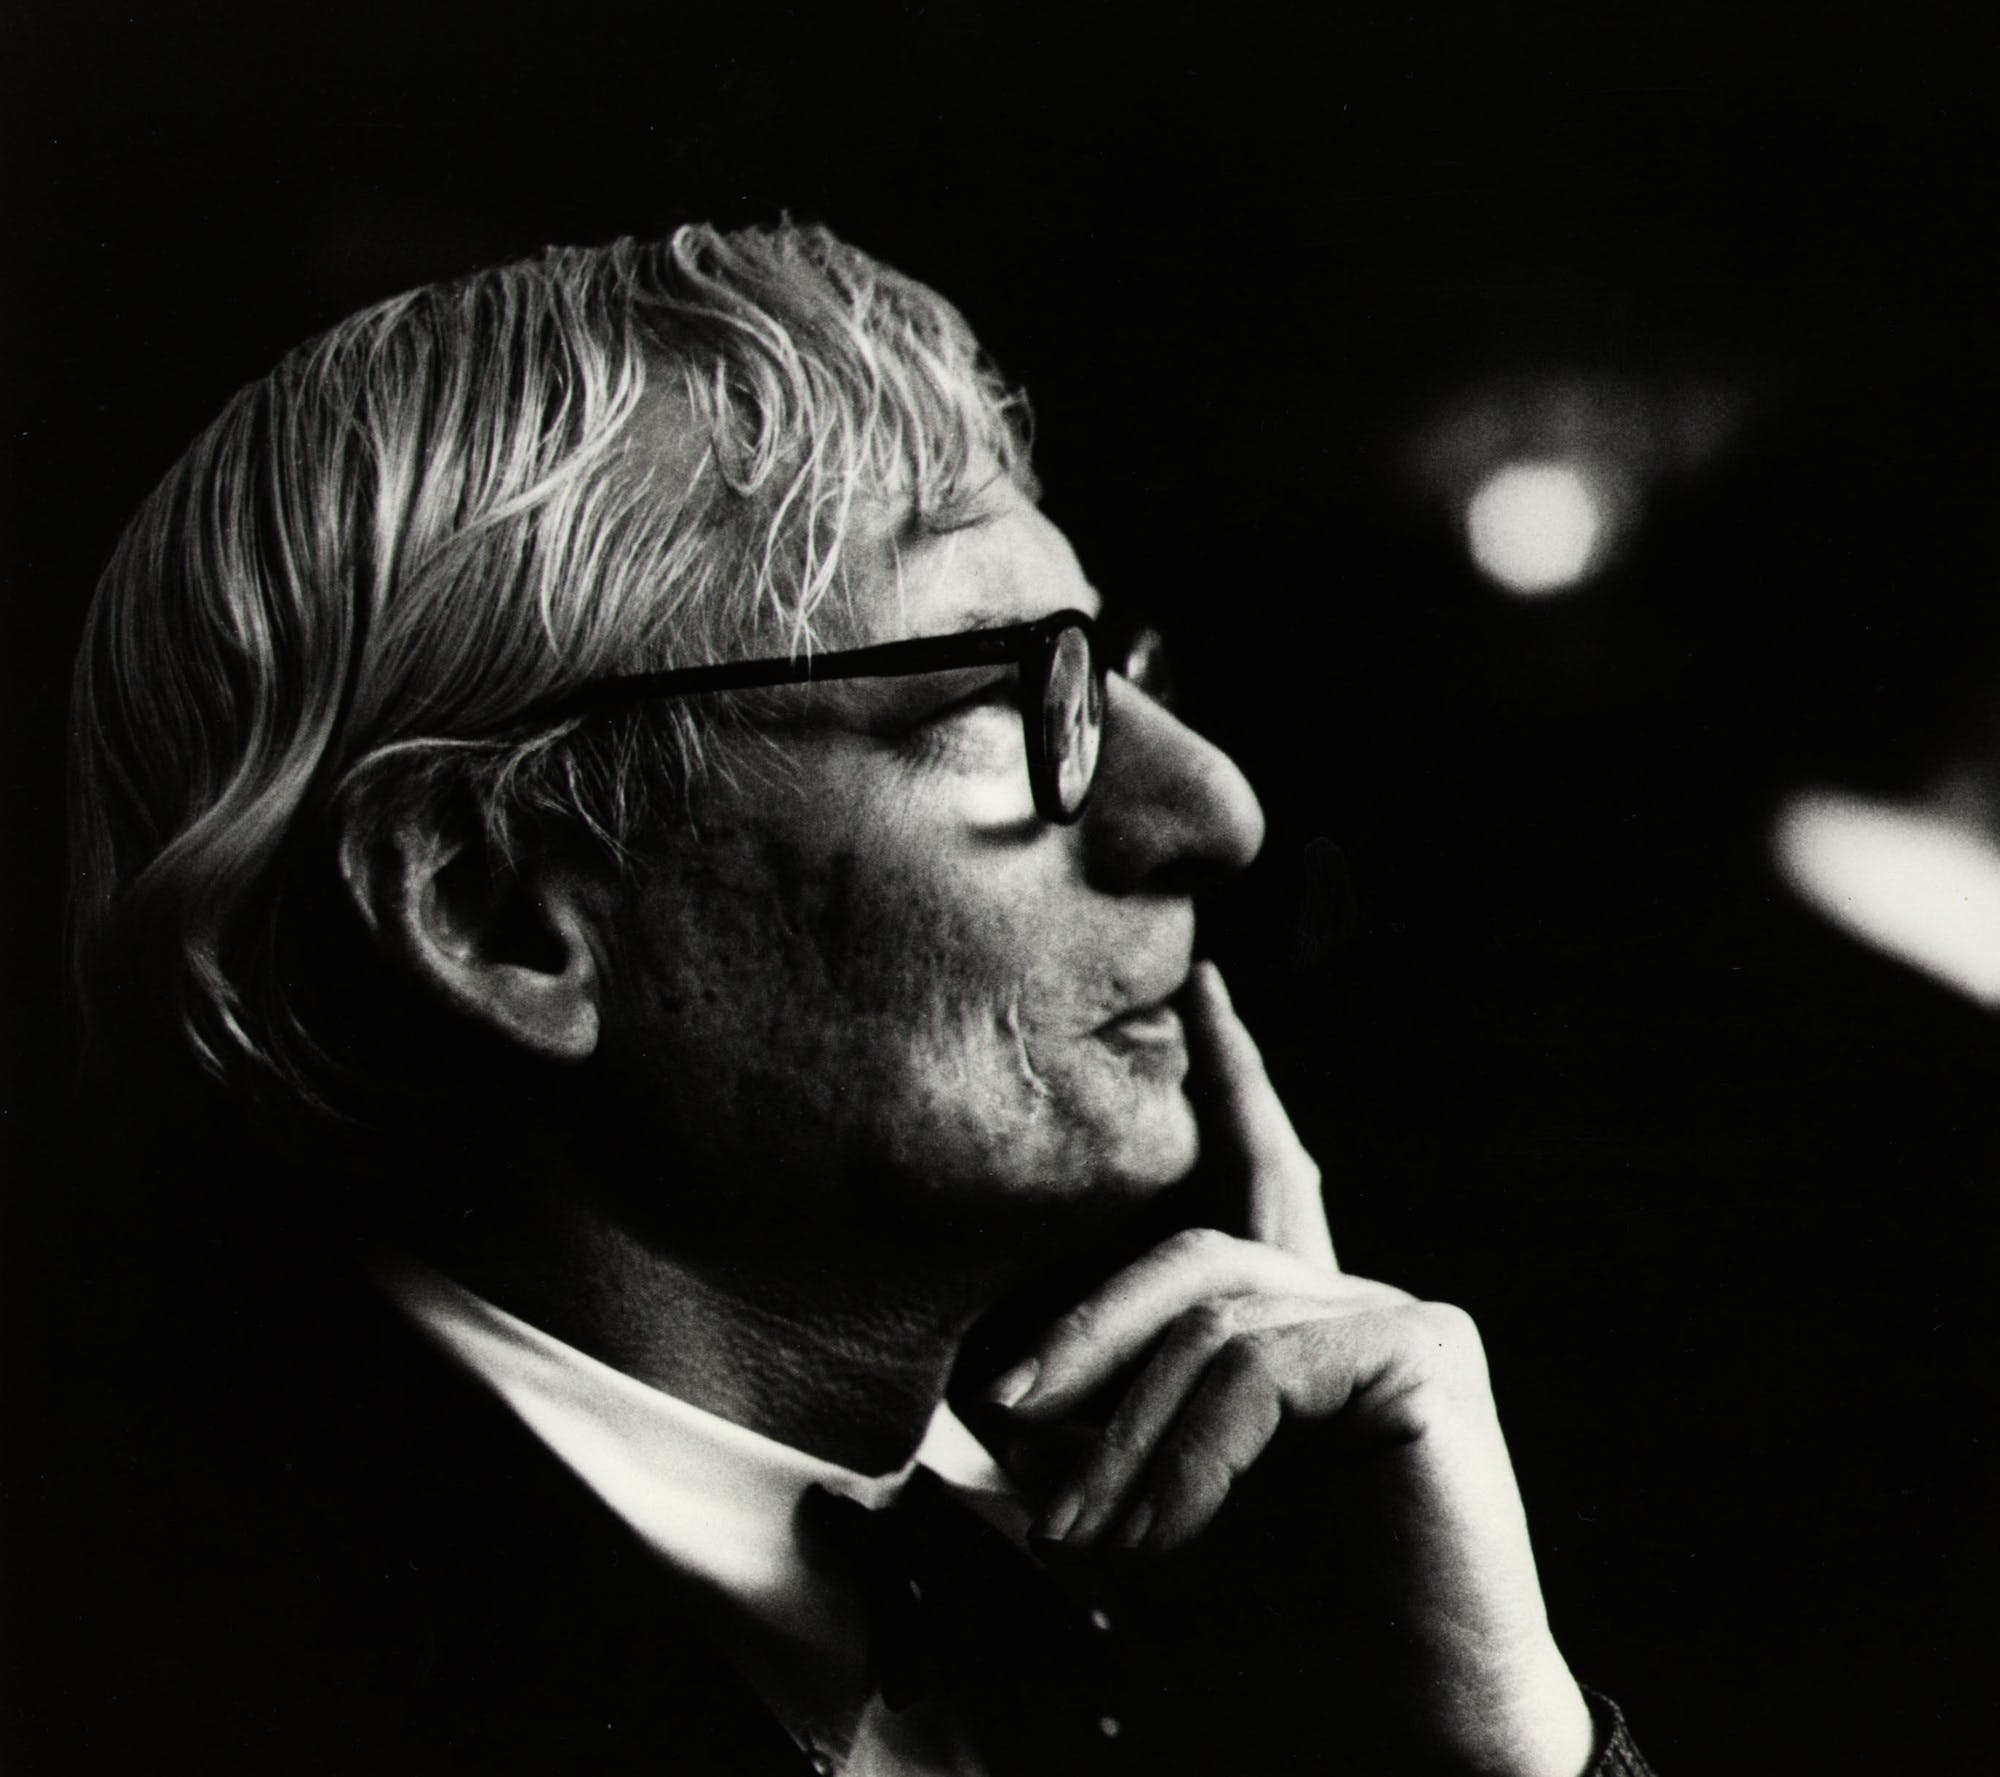 25 Famous quotes by famous architects - Sheet1